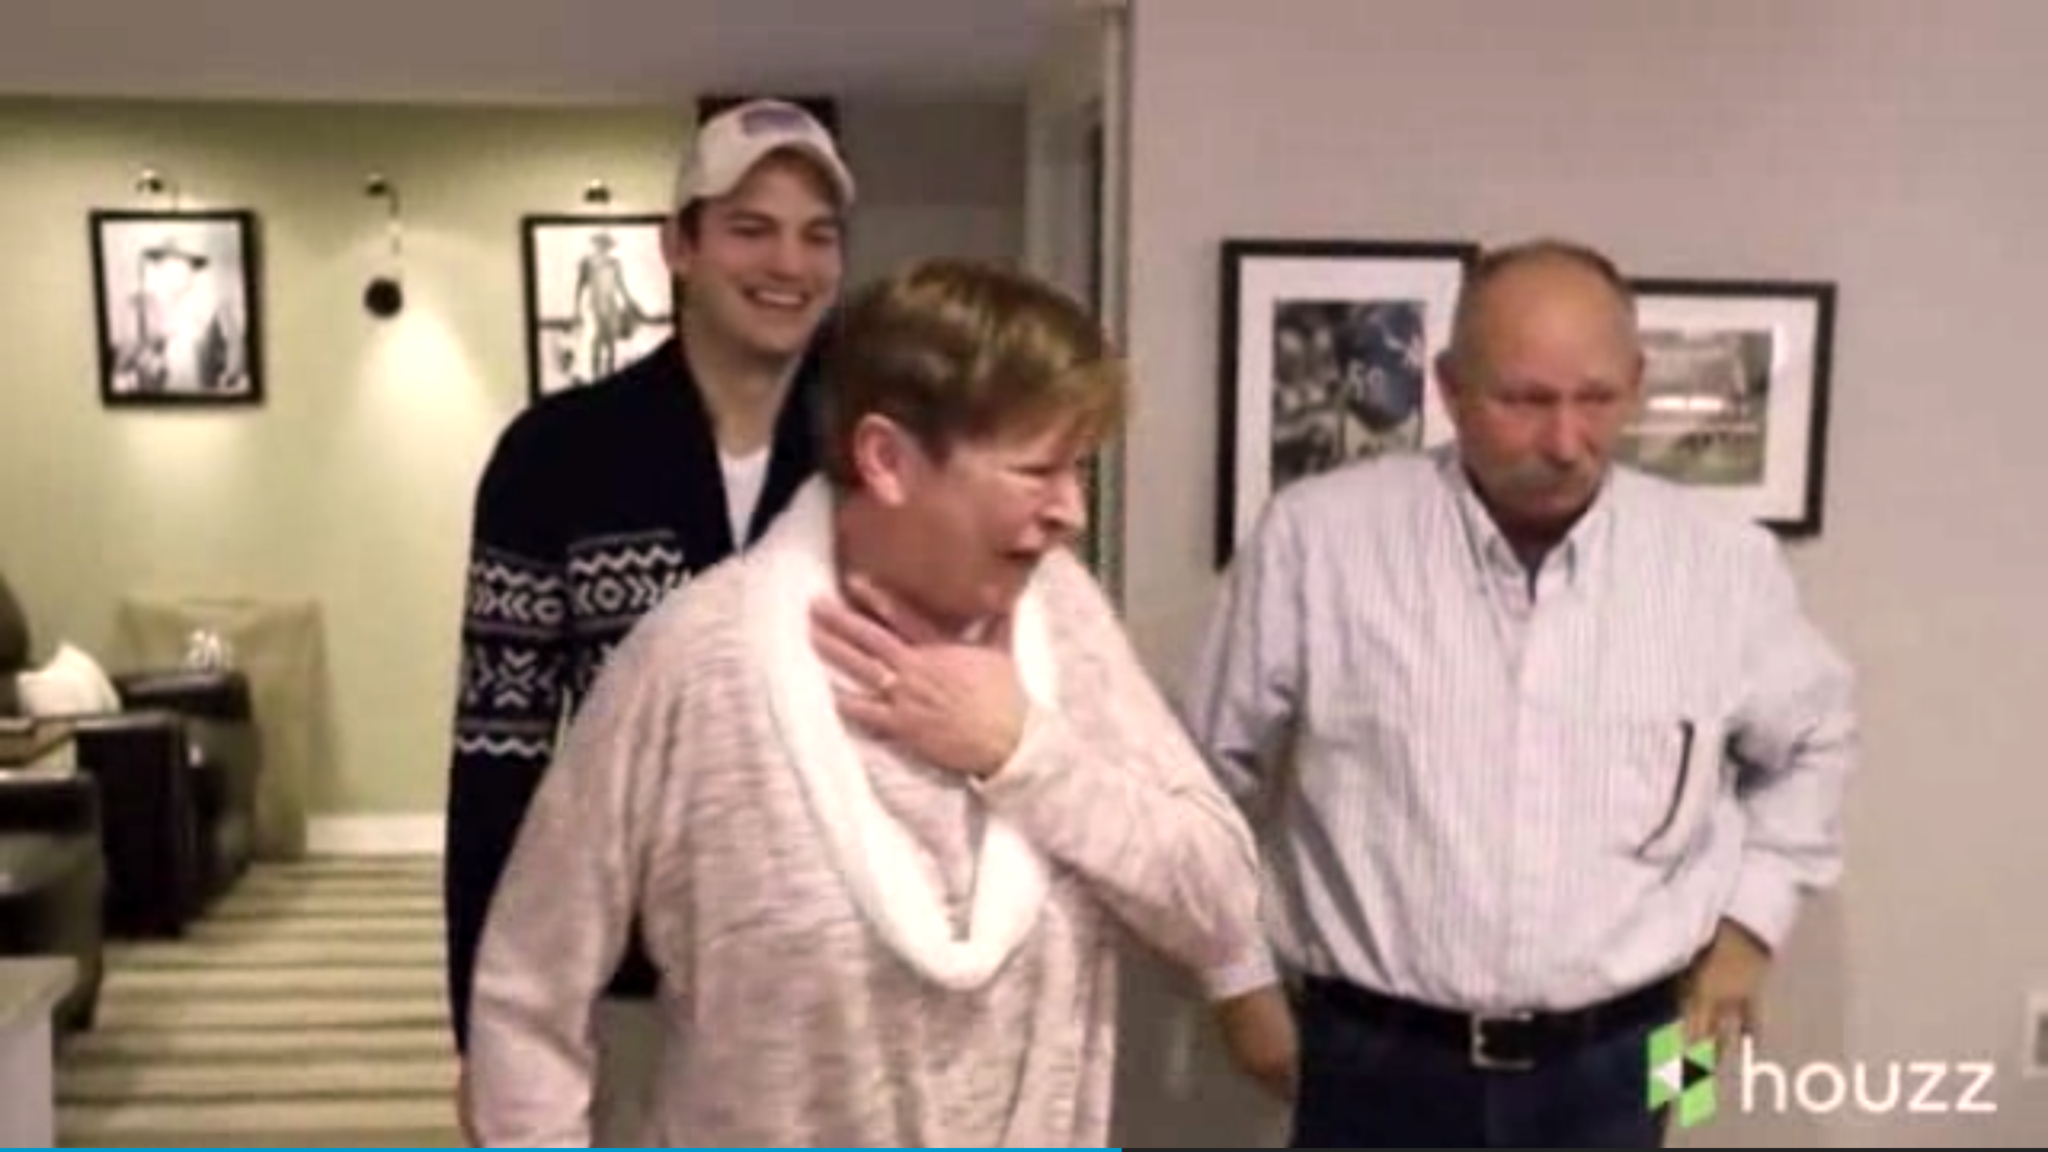 Ashton kutcher surprises his mom with over the top mother 39 s day gift chicago tribune - A dream basement ashton kutchers surprise for his mom ...